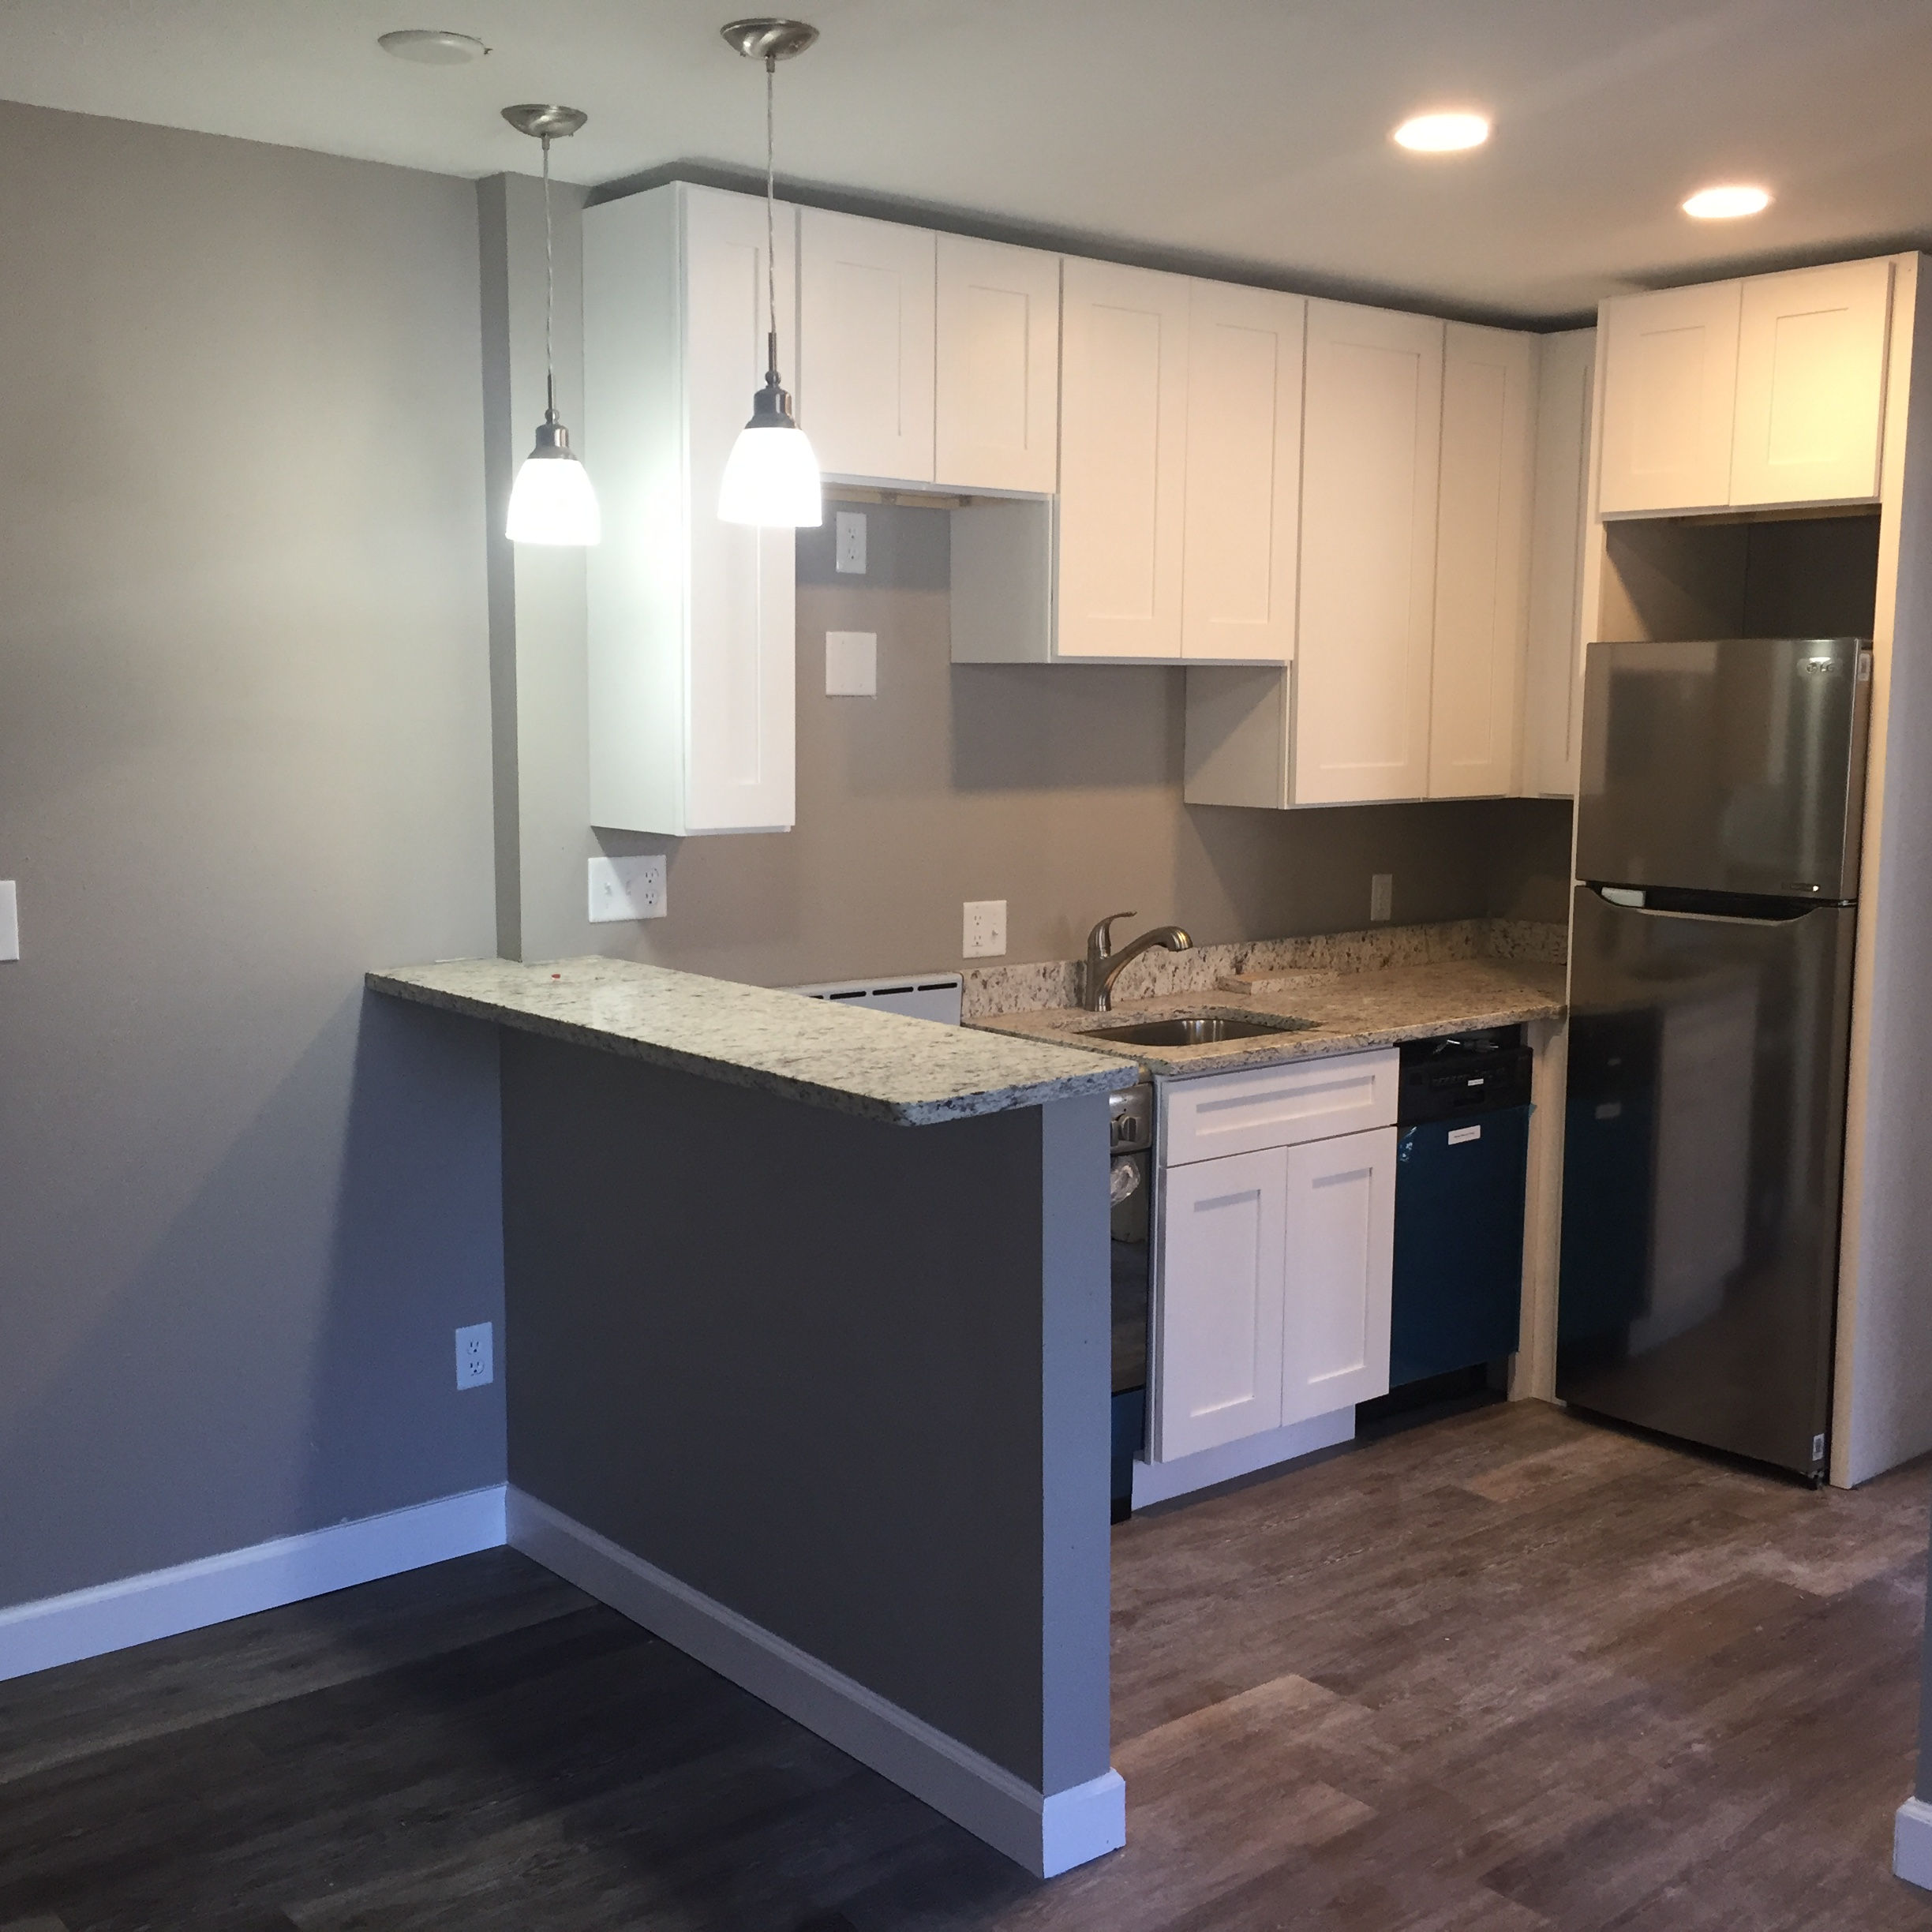 Starting At Just $750/month, These Modern Ohio City Apartments Are Ideally  Situated Near Downtown Cleveland And The Freeway.